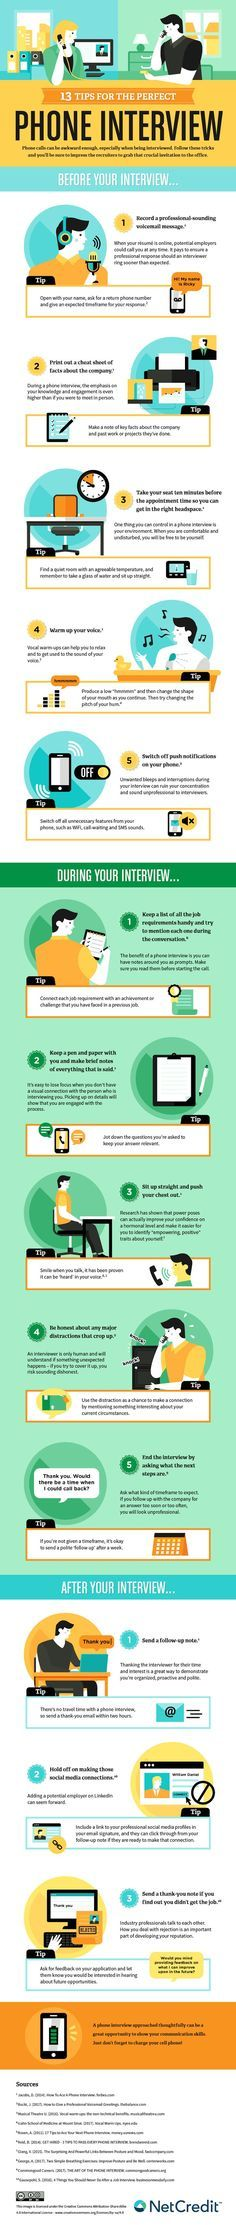 13 Tips for the Perfect Phone Interview_Recruiter